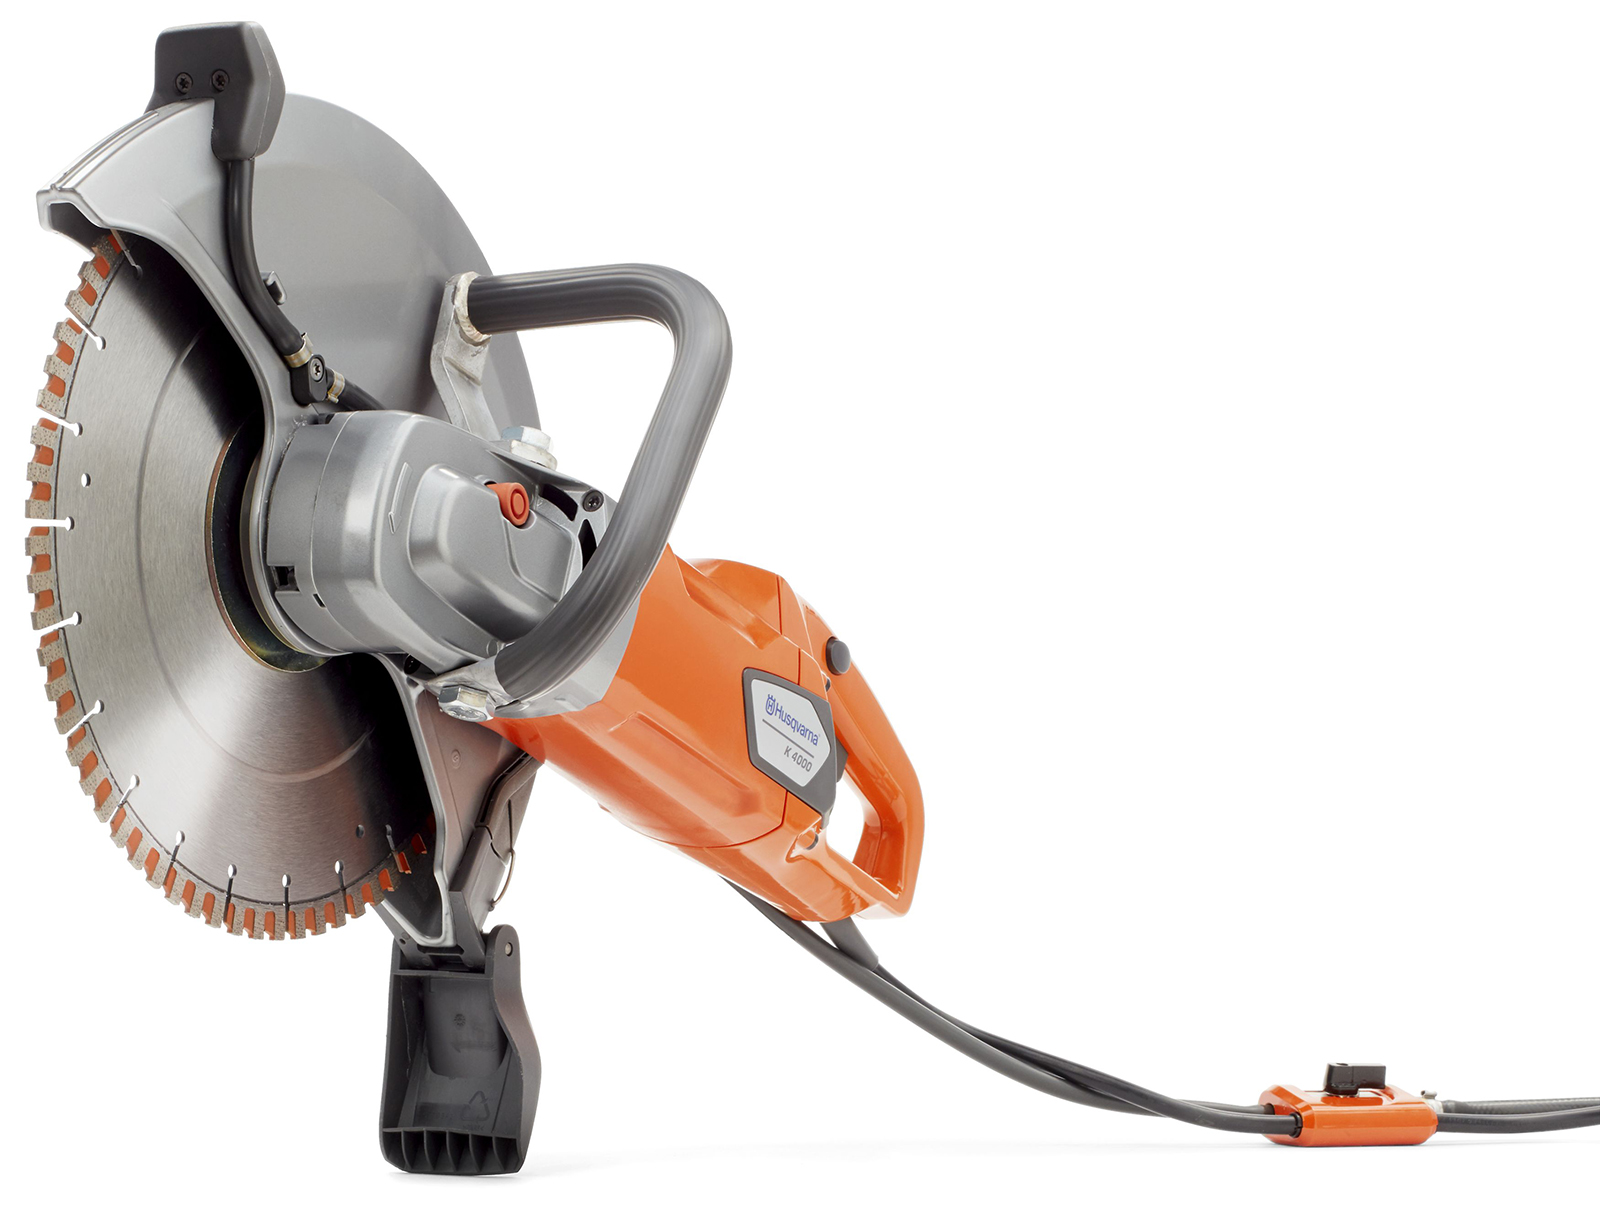 Husqvarna K 4000 all-round cutter